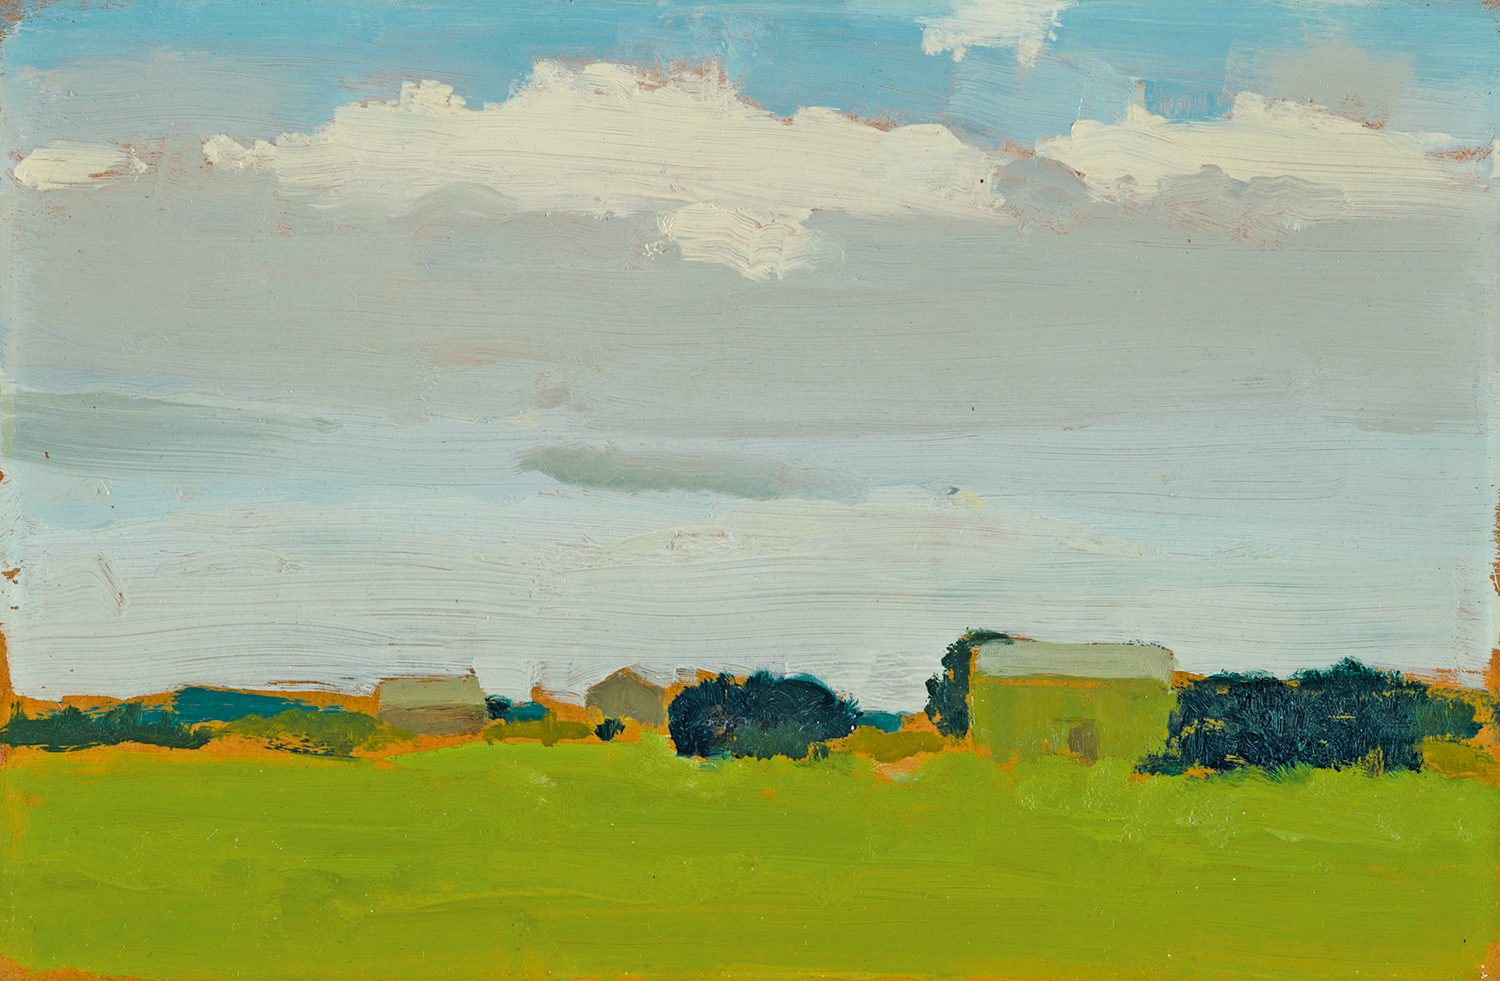 Farm-Landscape-c.-1970-by-Albert-York